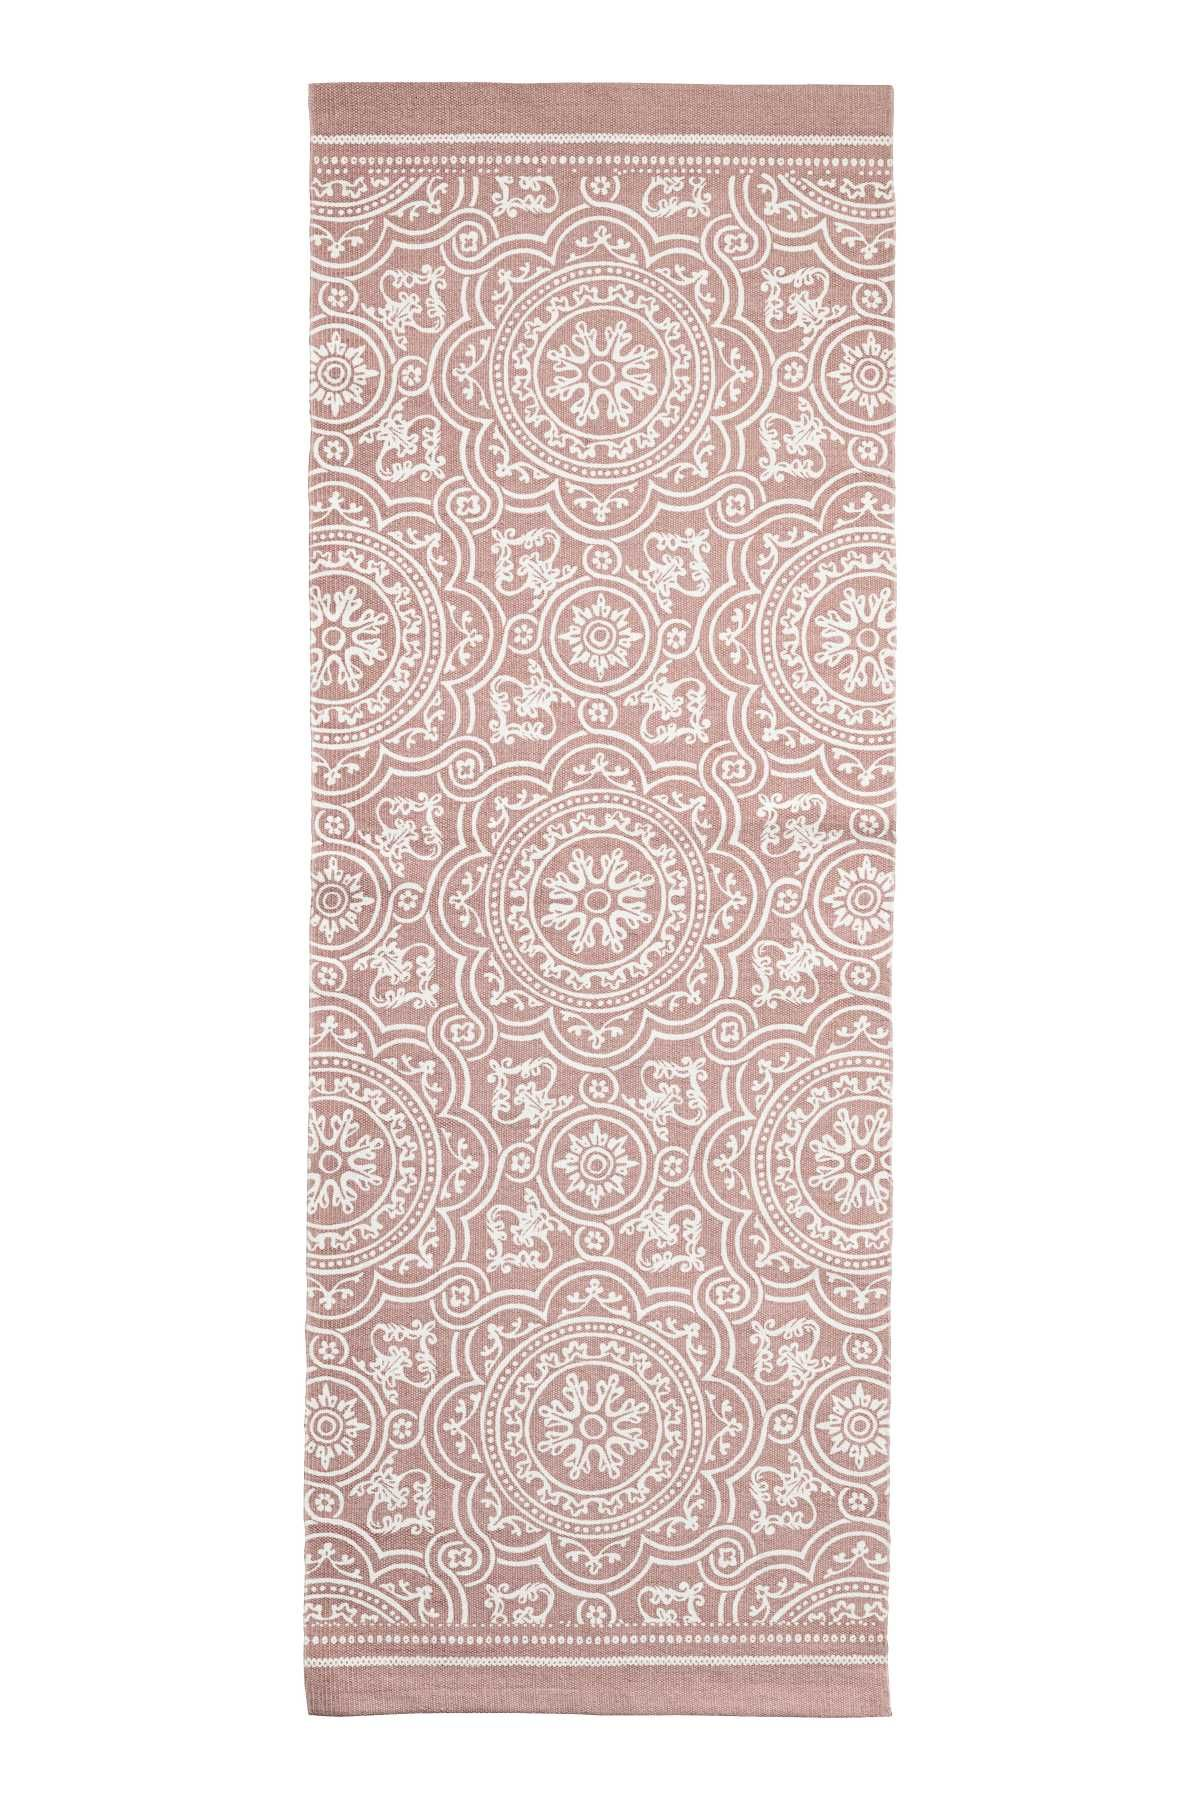 Rectangular Rug In Woven Cotton Fabric With A Printed Pattern